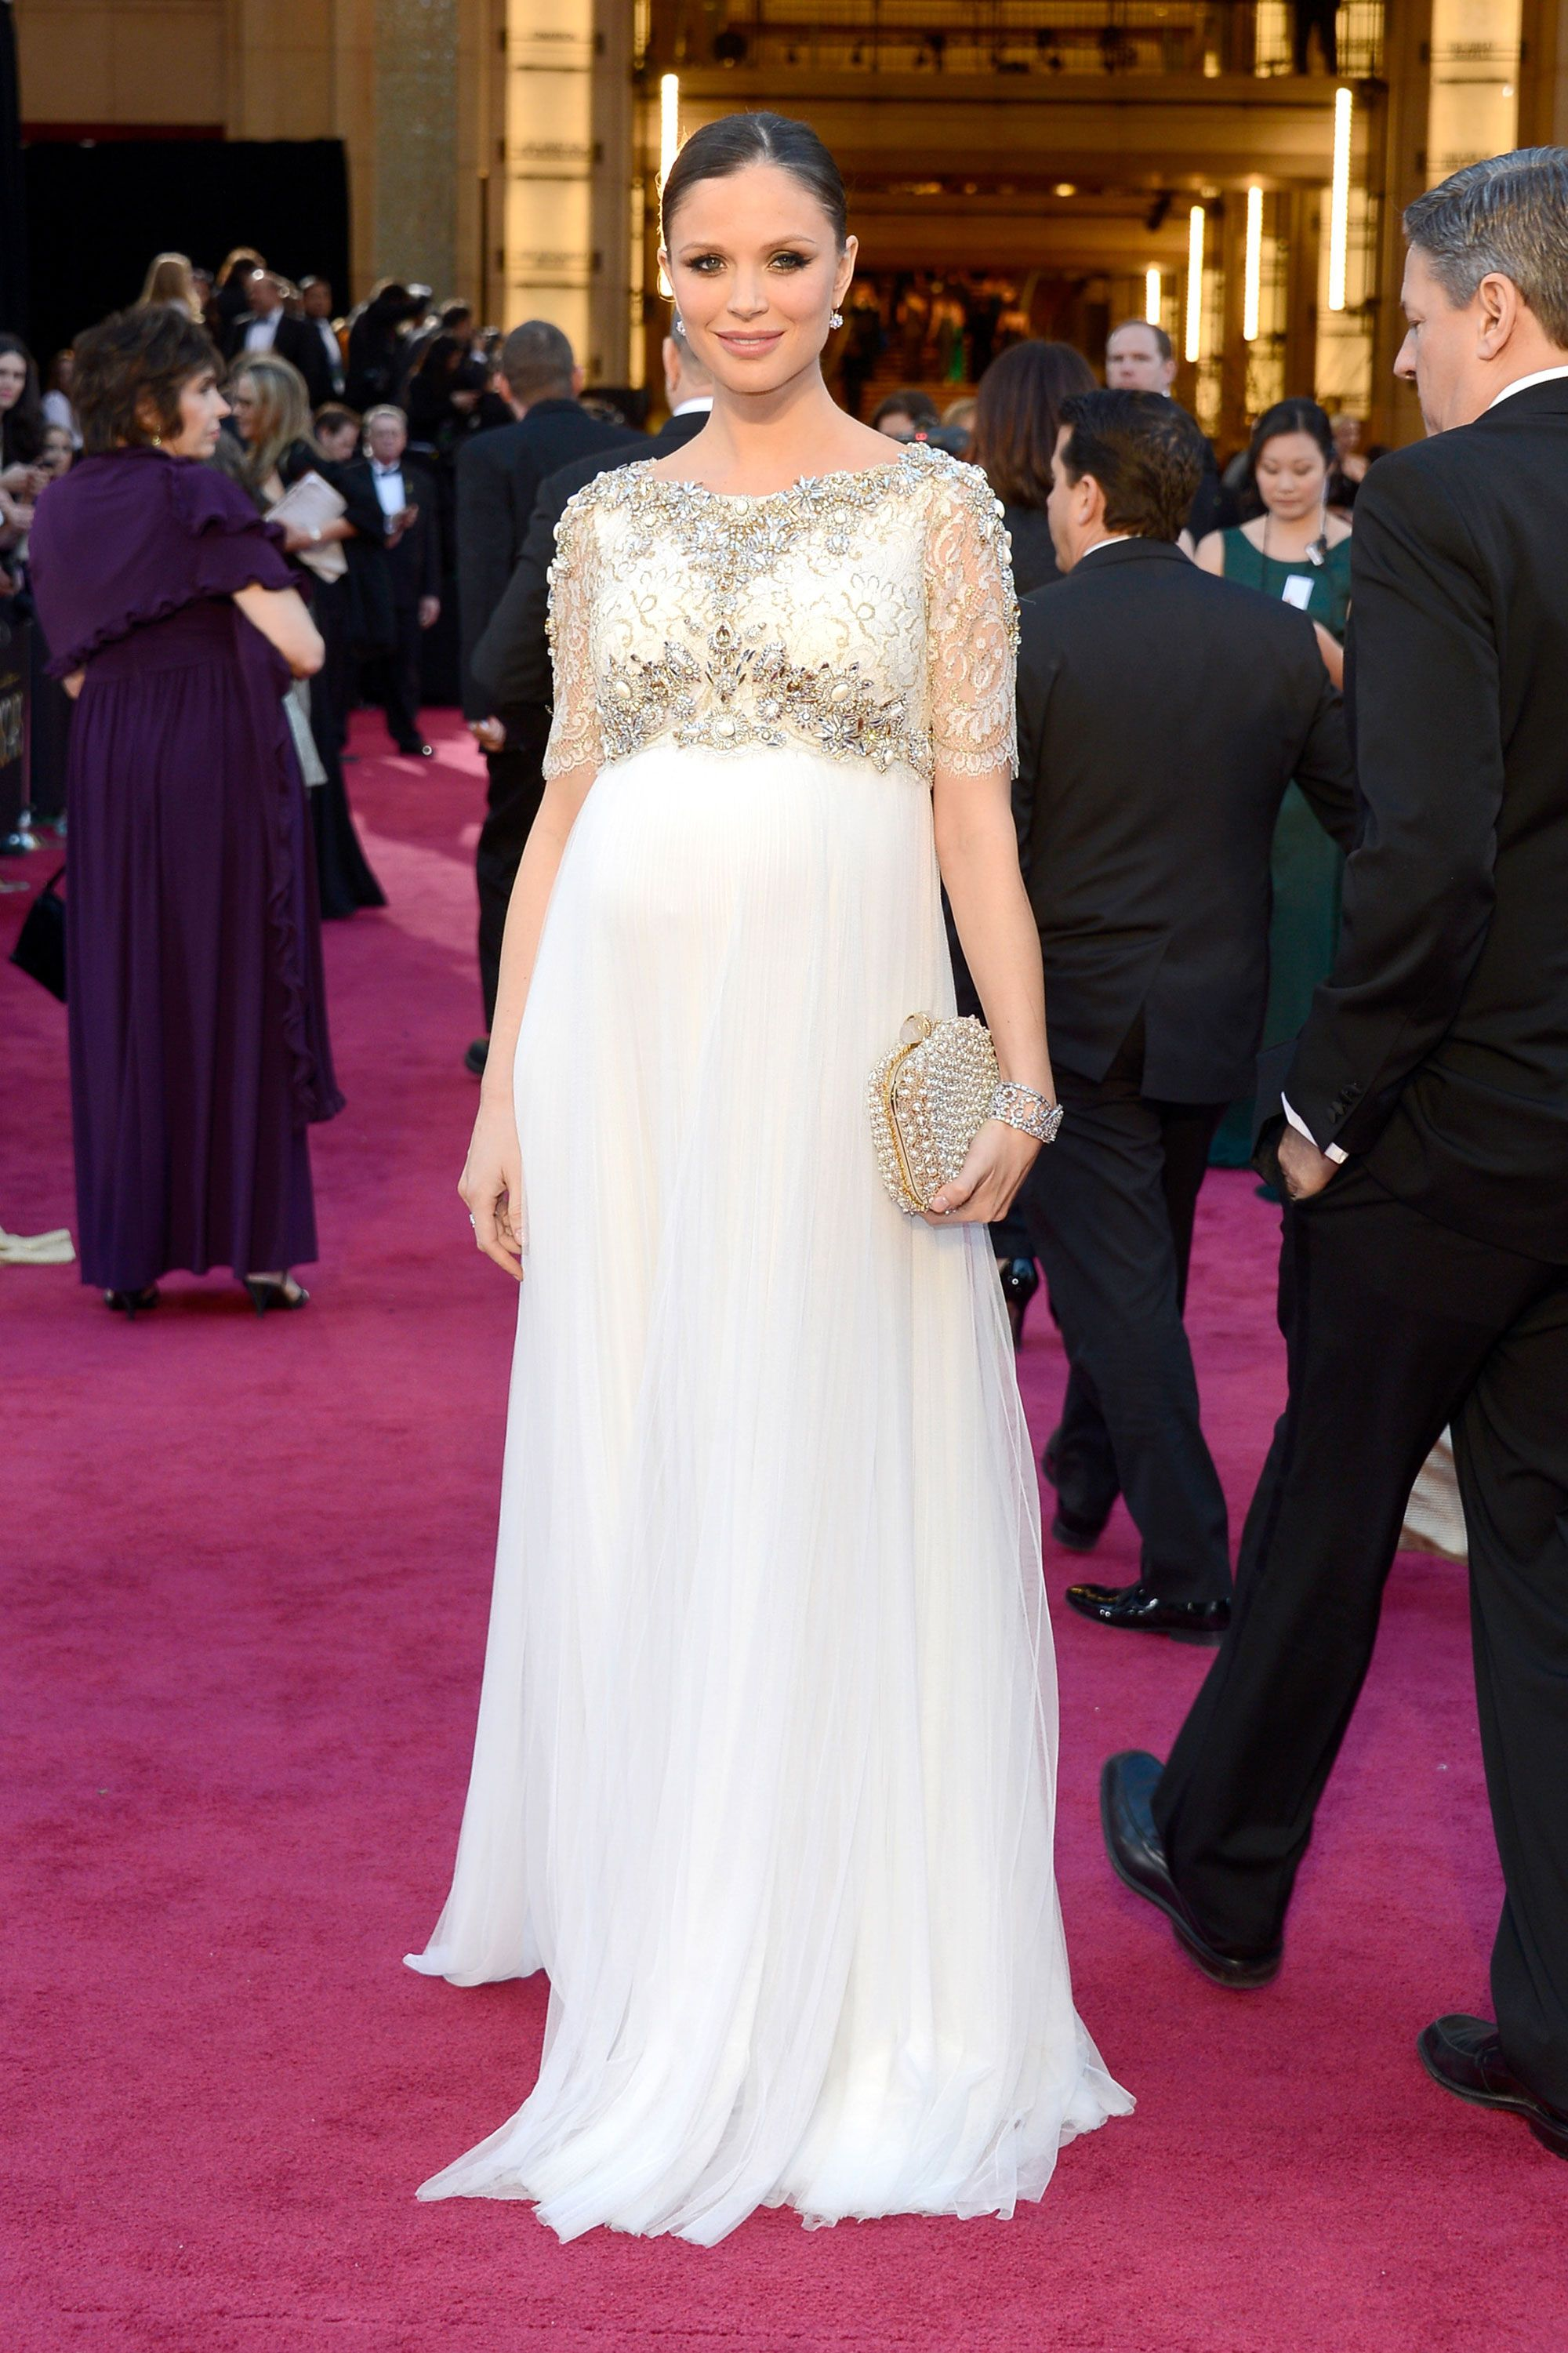 The Best Pregnancy Style at the Academy Awards